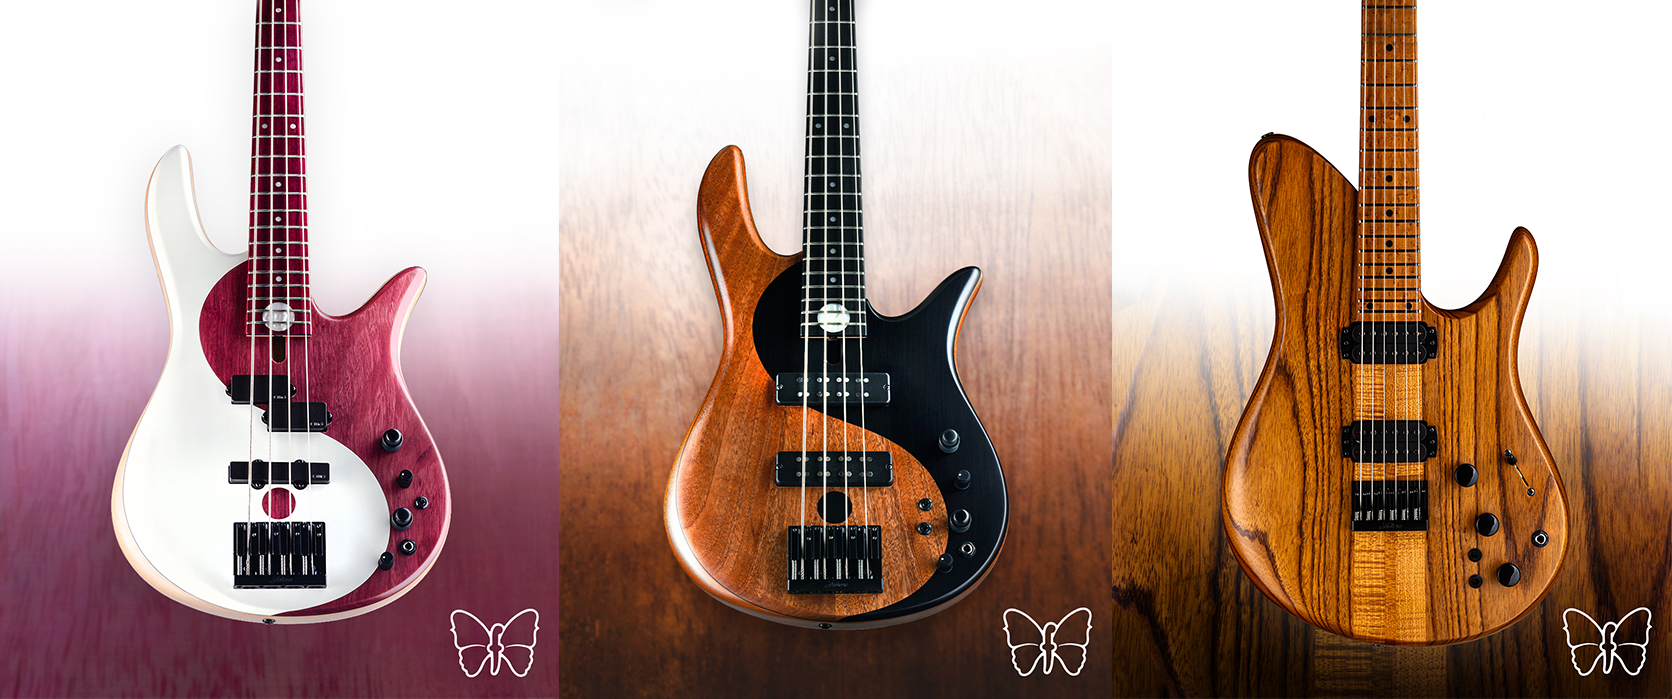 Three New Fodera Bass Guitar Releases